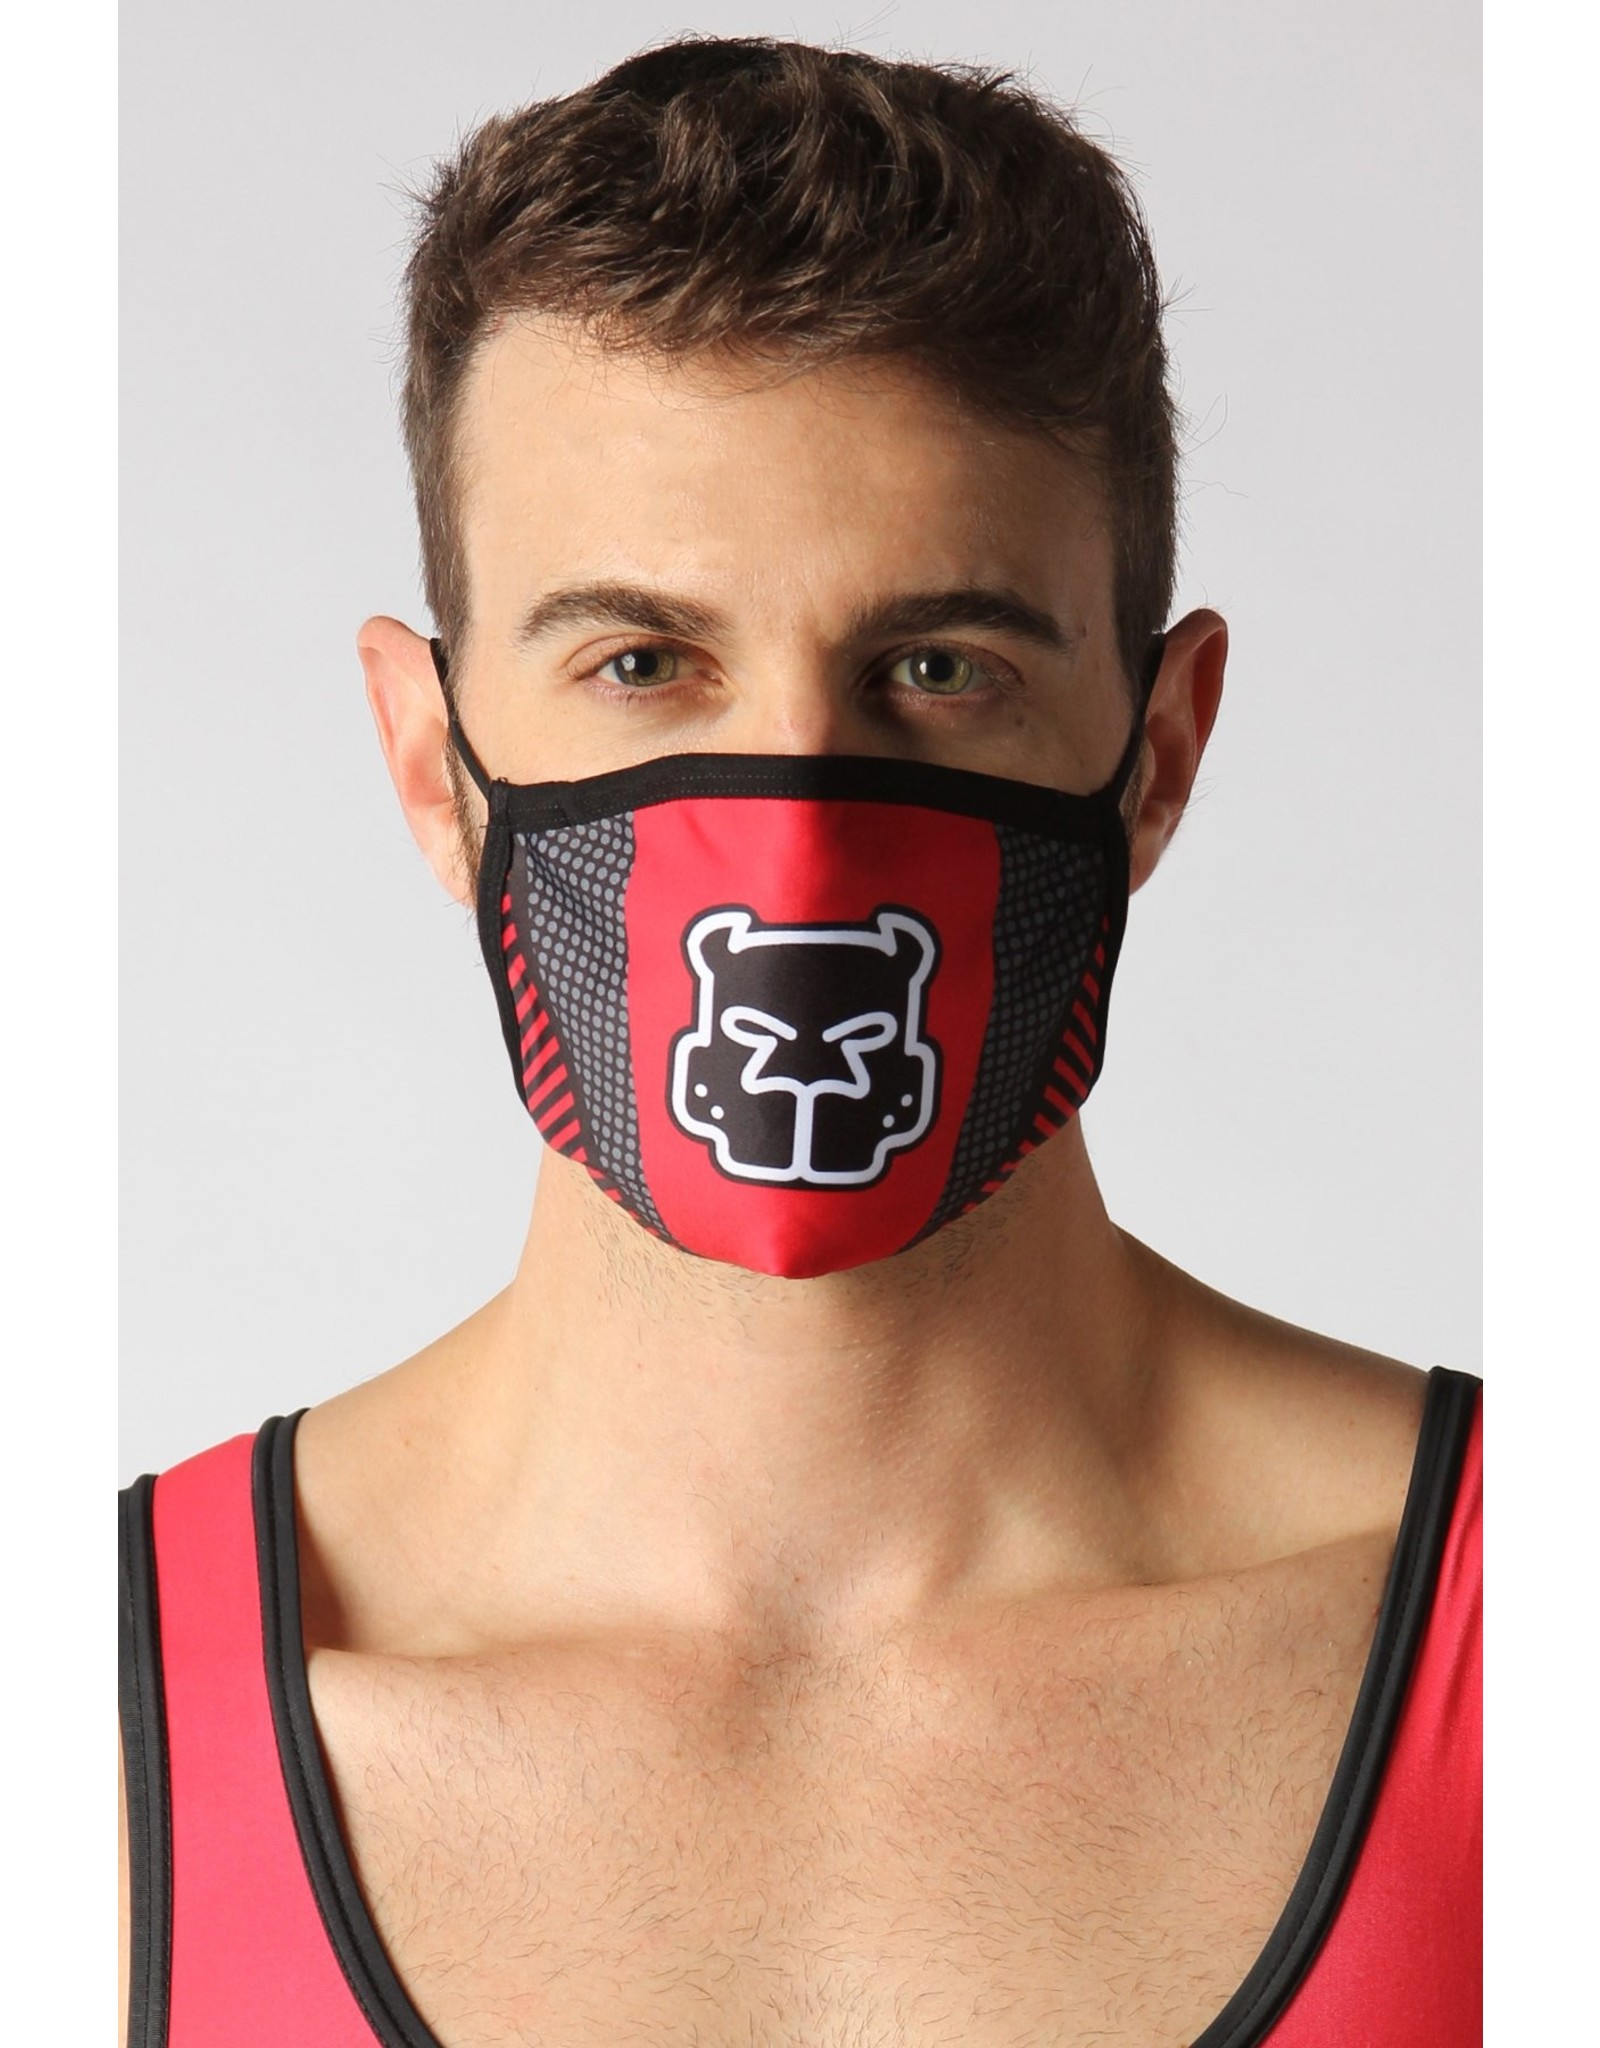 Cellblock13 Cellblock13 Kennel Club Scout Mask